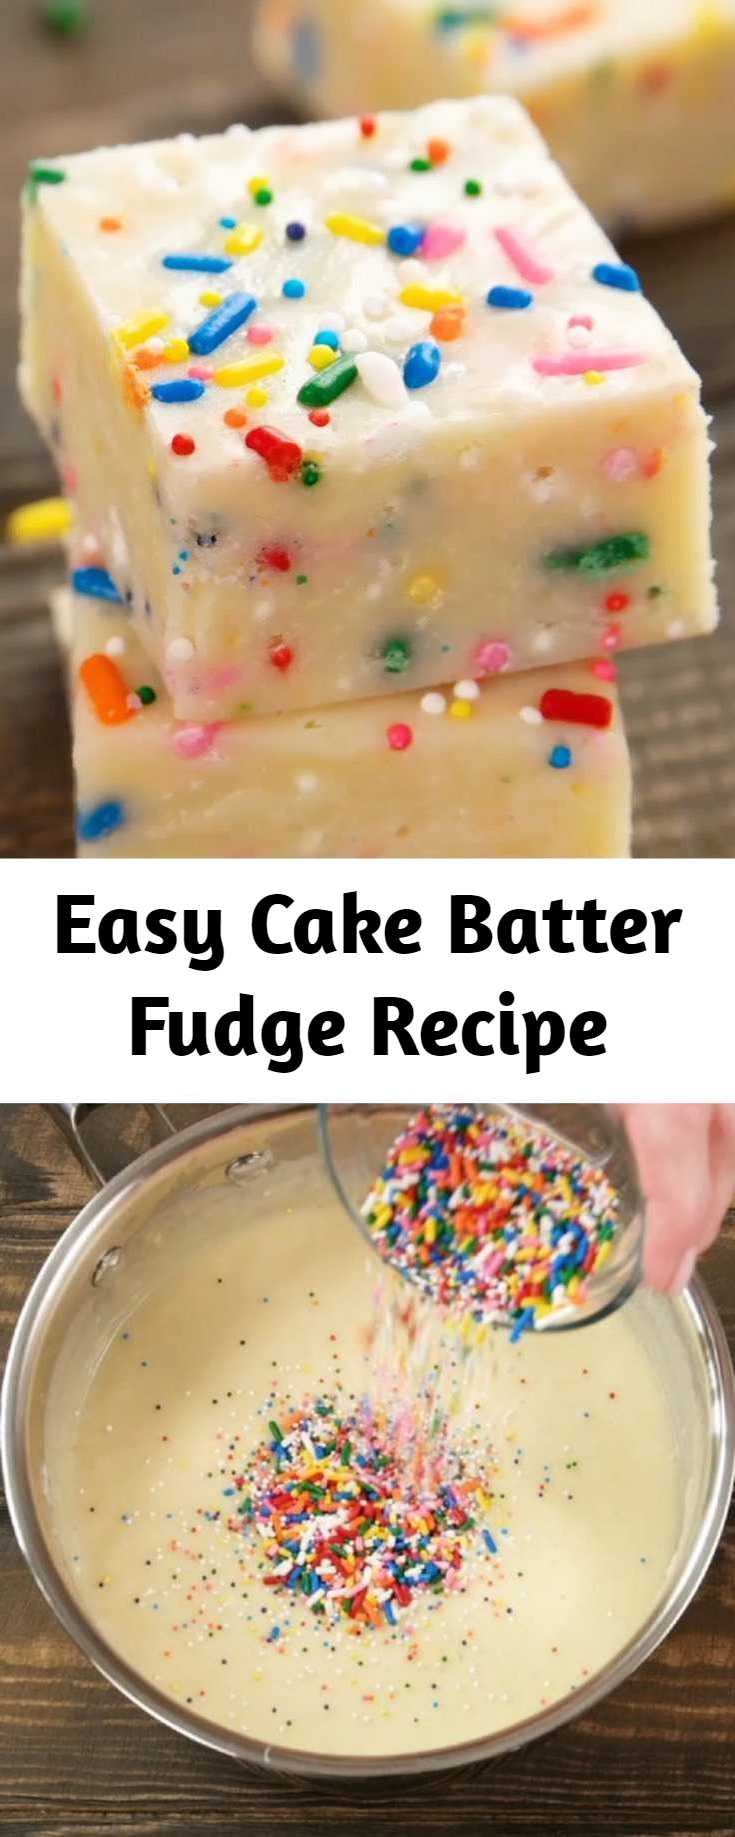 Easy Cake Batter Fudge Recipe - This easy Cake Batter Fudge is creamy and chocolatey, sweet and soft with colorful sprinkles. It's a delicious no-bake treat for birthdays, holidays or just everyday.